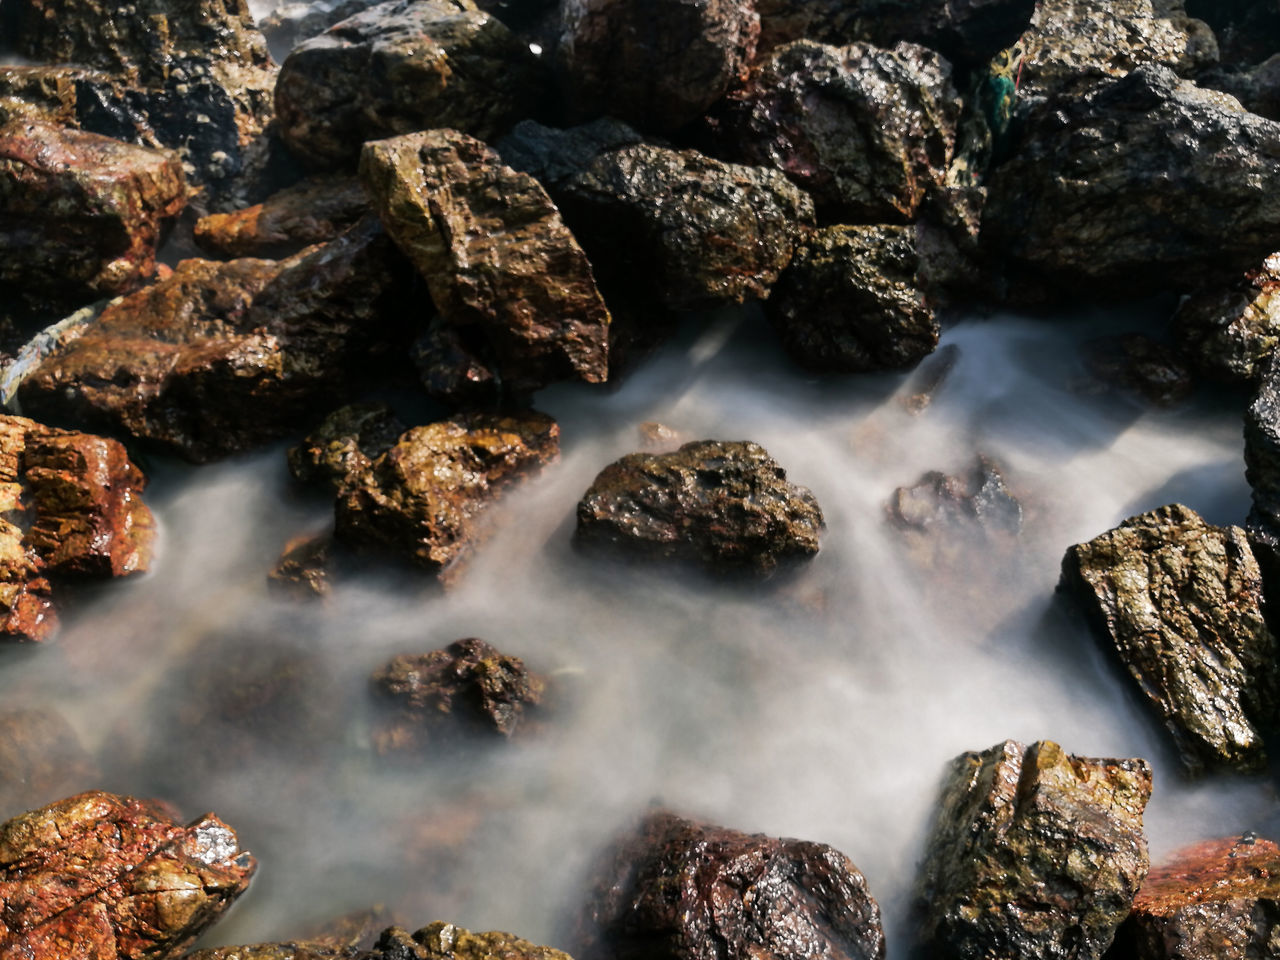 High Angle View Of Stream By Rocks